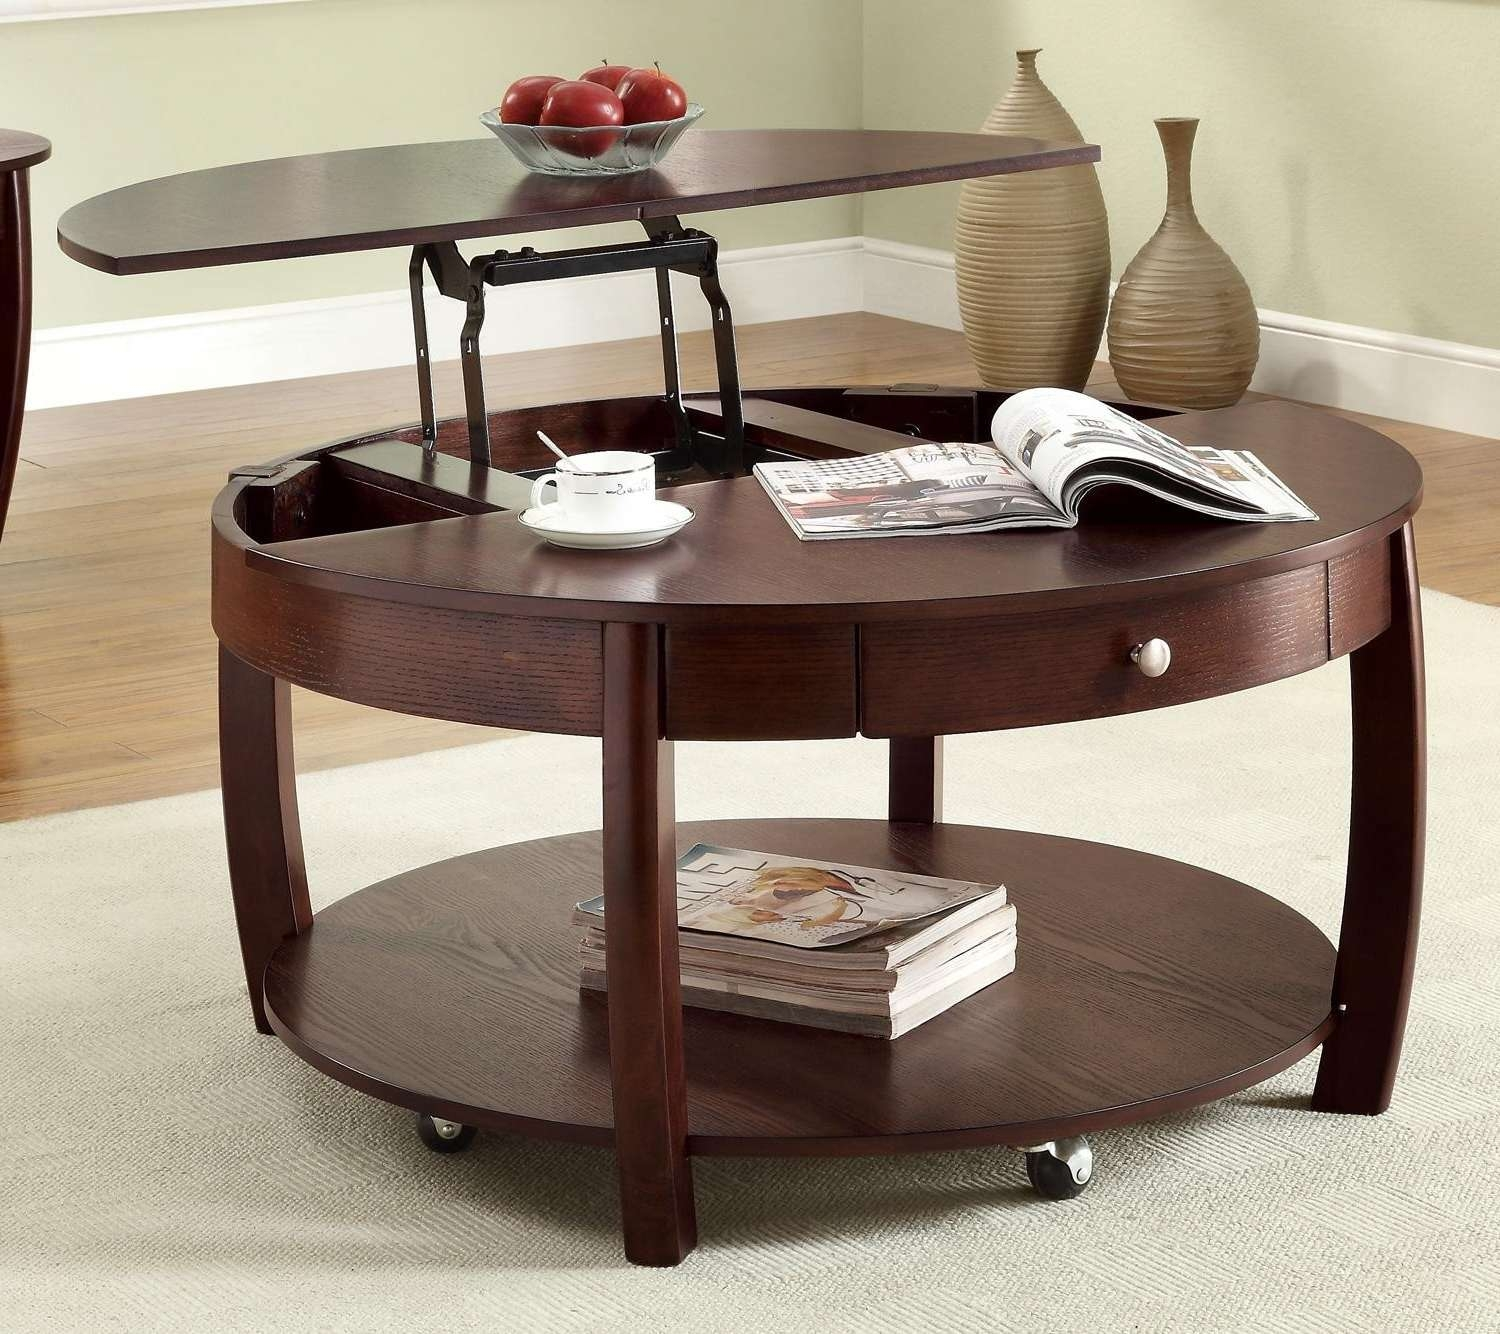 Coffee Tables : Lift Up Coffee Table Mechanism Furniture Within Famous Coffee Tables With Raisable Top (View 8 of 20)